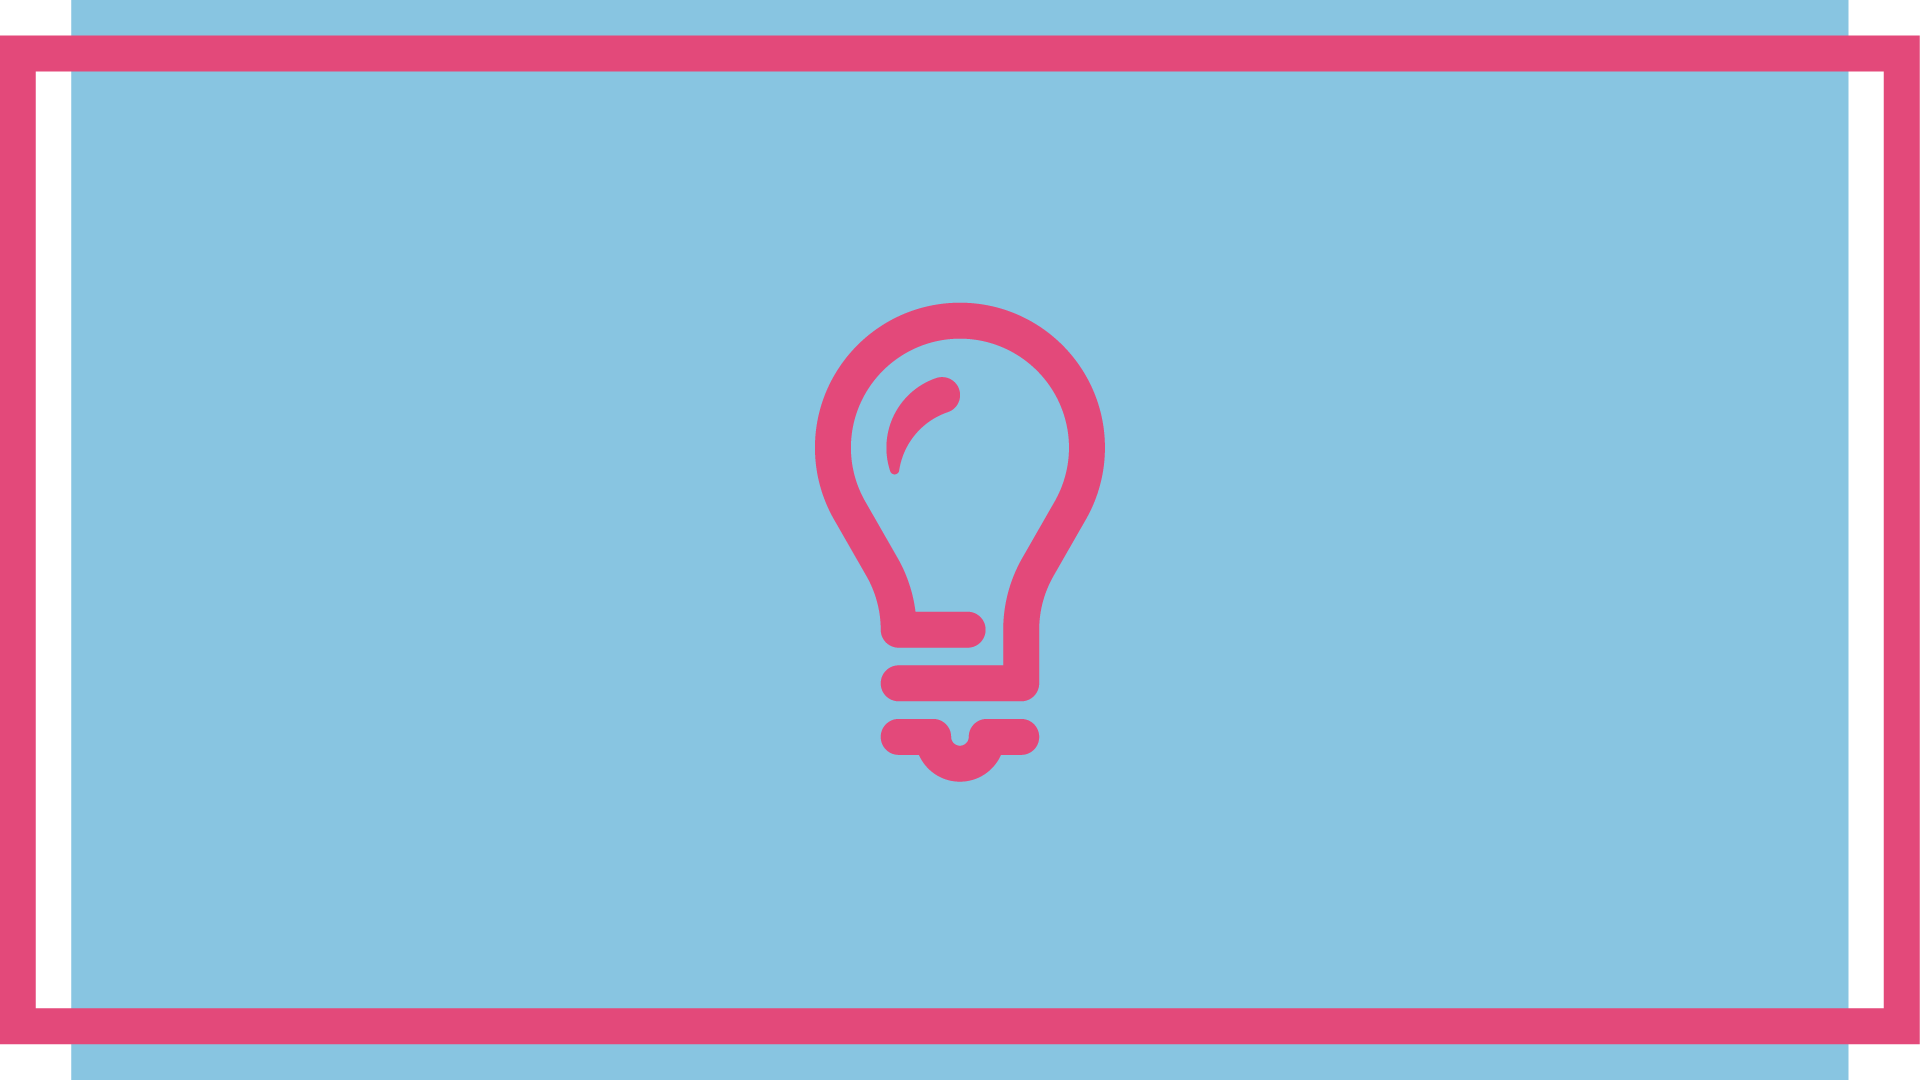 Pink lightbulb icon on a pale blue background